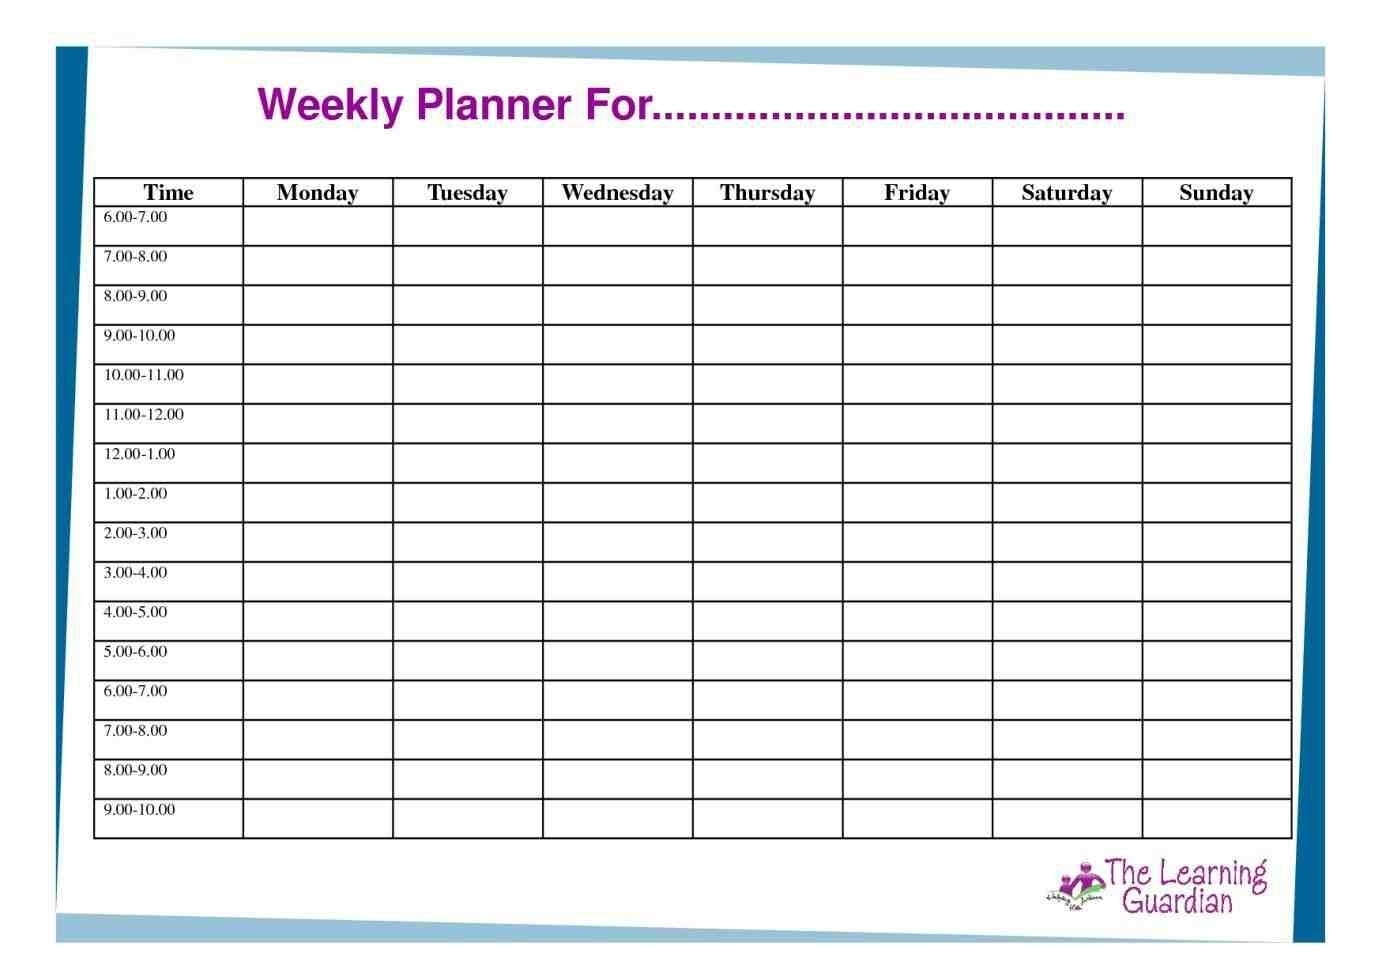 Hourly Schedule Template Week Free Excel | Smorad in Free Printable Hourly Weekly Schedule Pdf